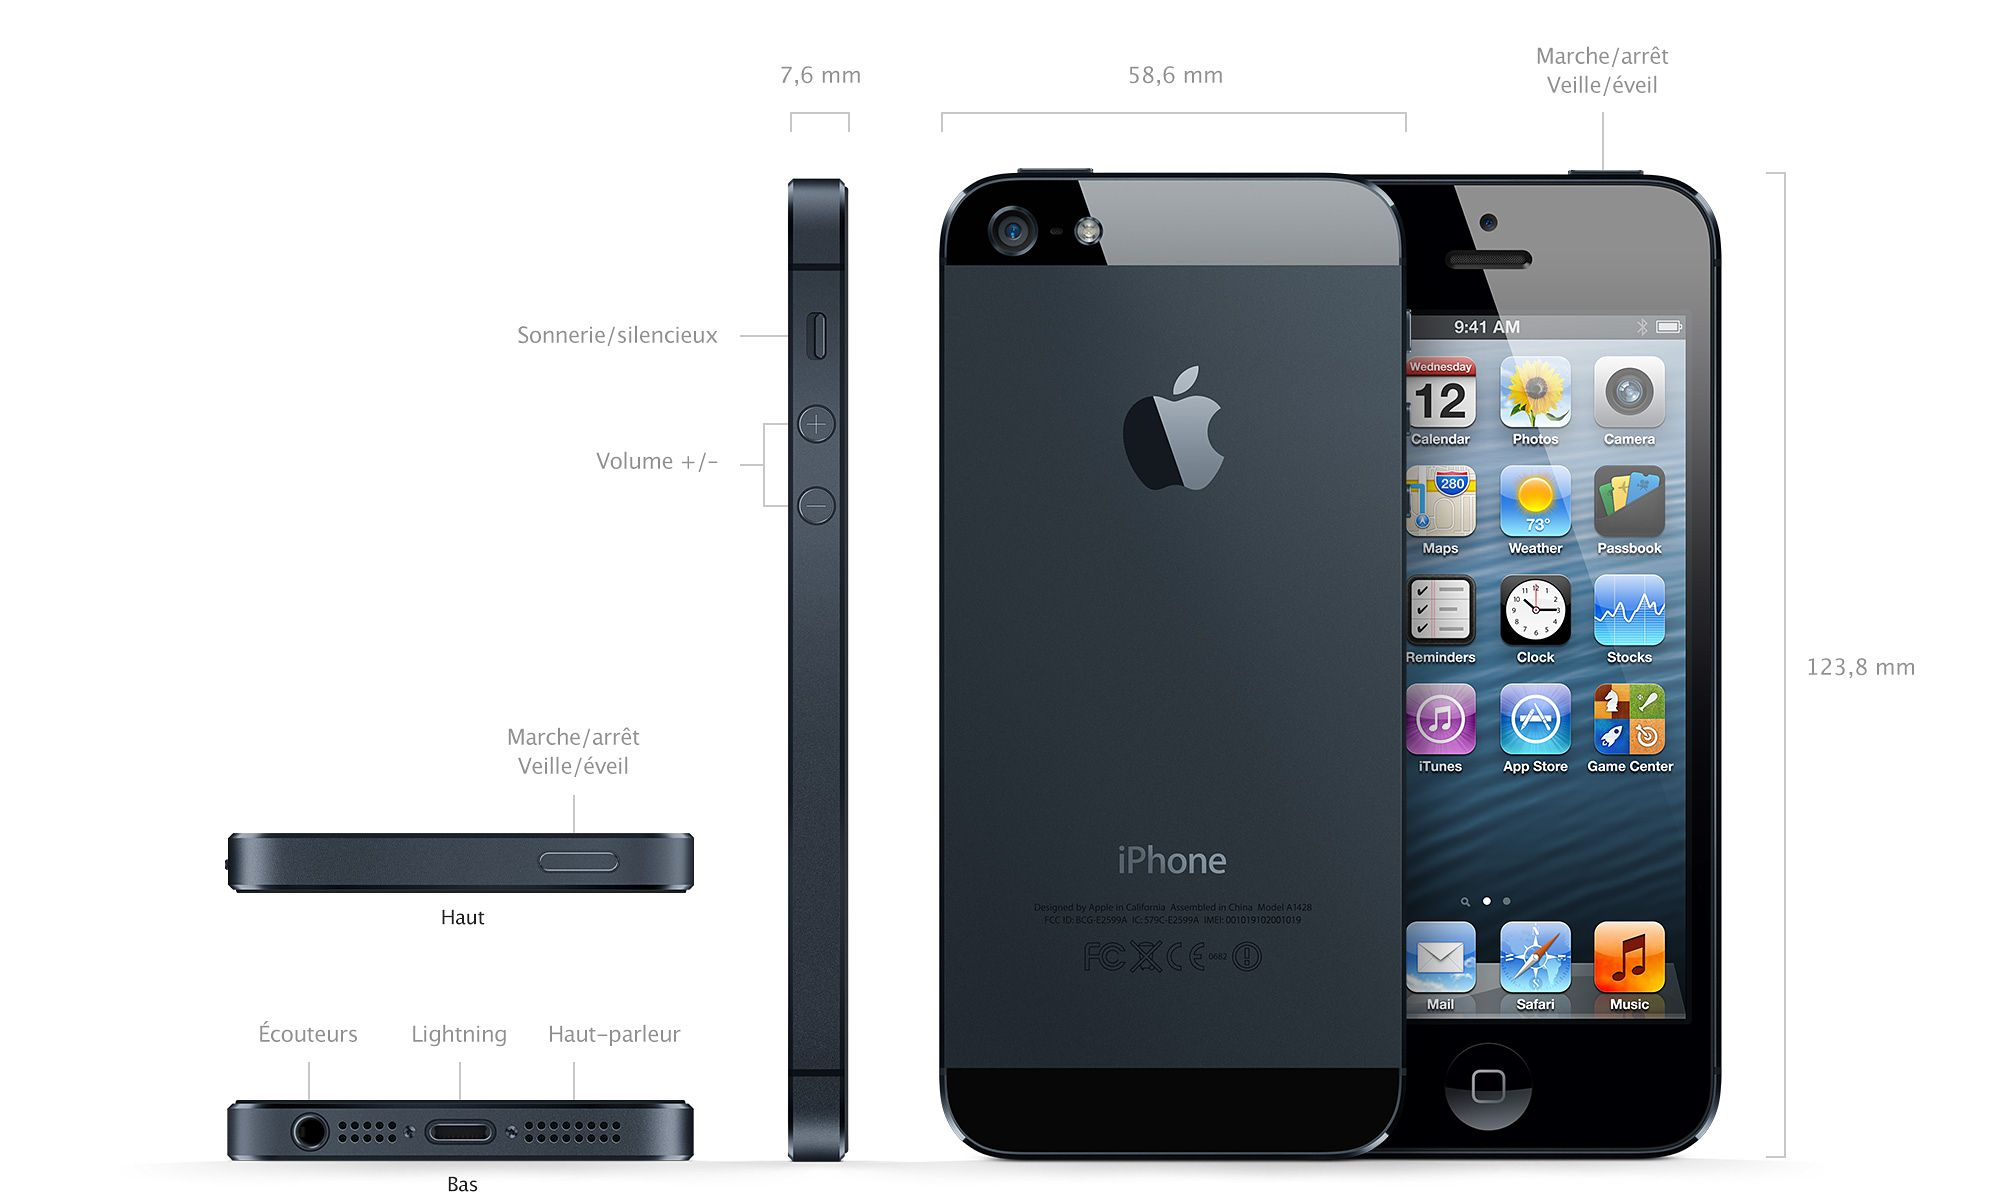 iphone 5 prix date de sortie vid o et photos officiels. Black Bedroom Furniture Sets. Home Design Ideas